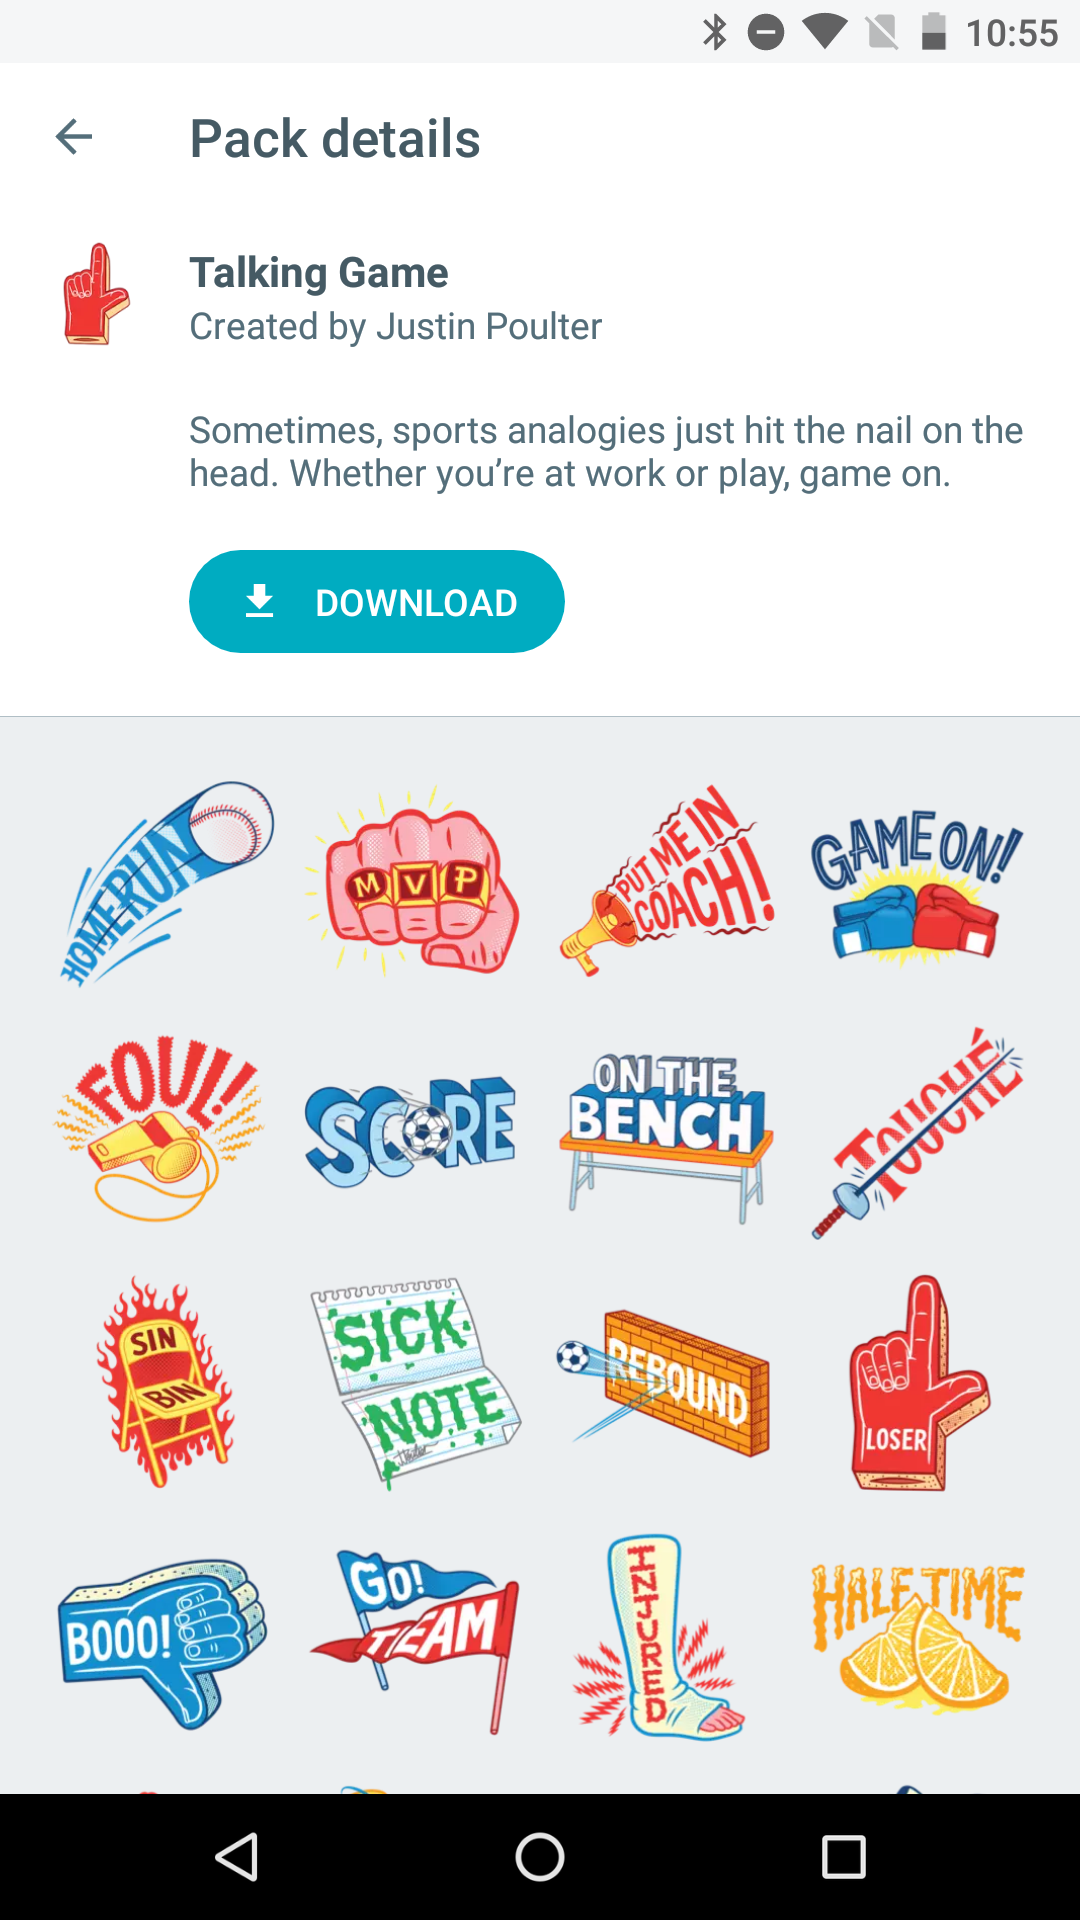 google-allo-sticker-packs-talking-game